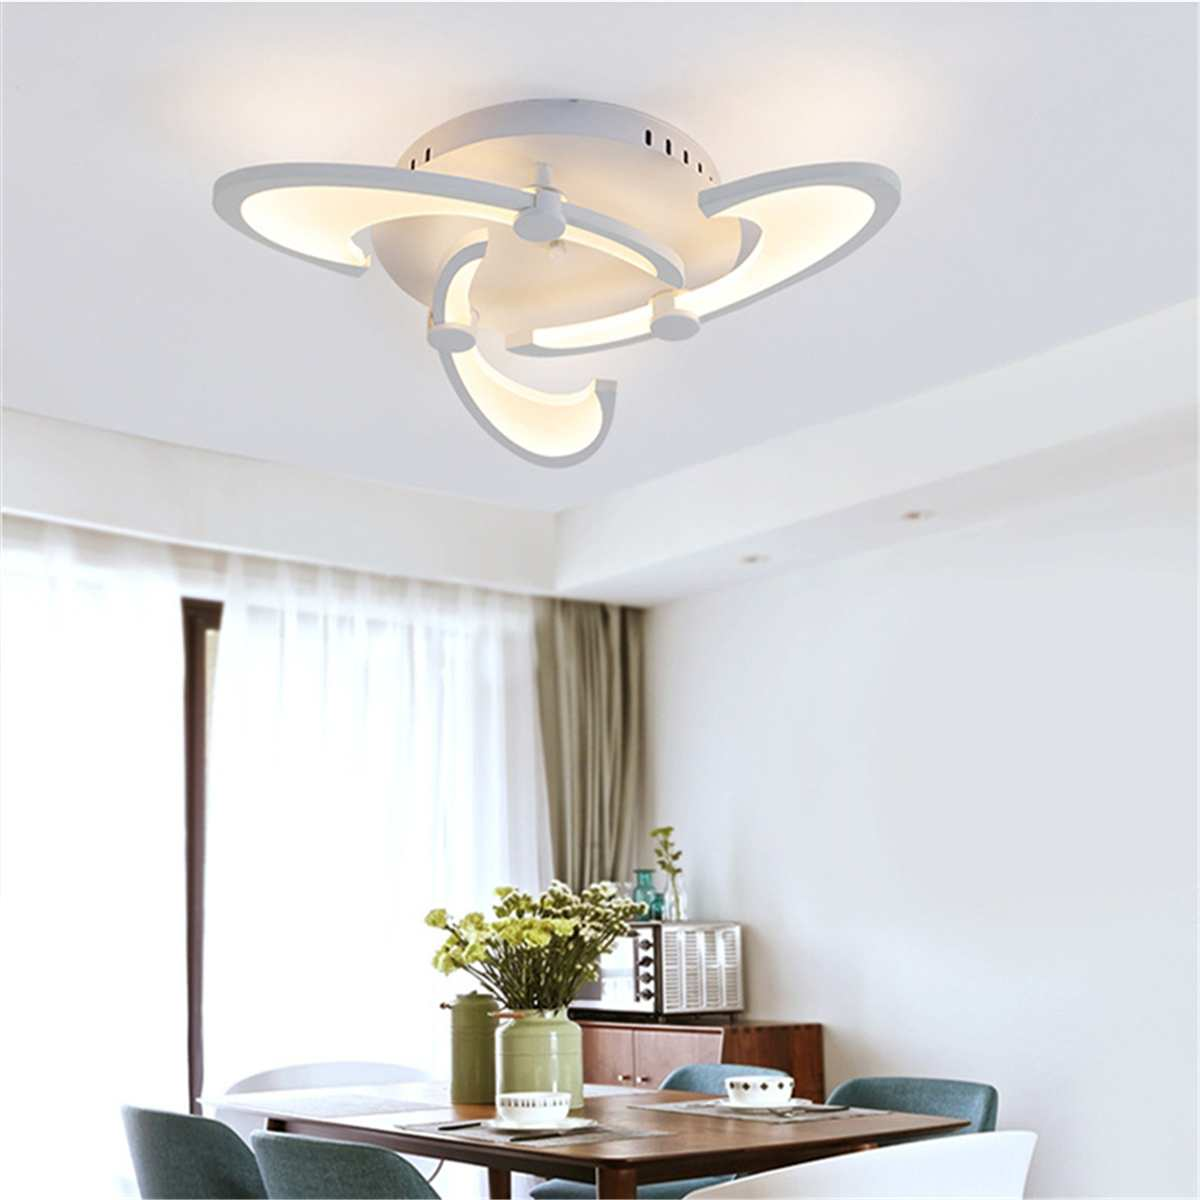 Modern-Remote-Control-Indoor-Lighting-Acrylic-Ceiling-Light-For-Living-Room-Nordic-Minimalist-6-3-Head Ideas For Dining Room Nordic @house2homegoods.net